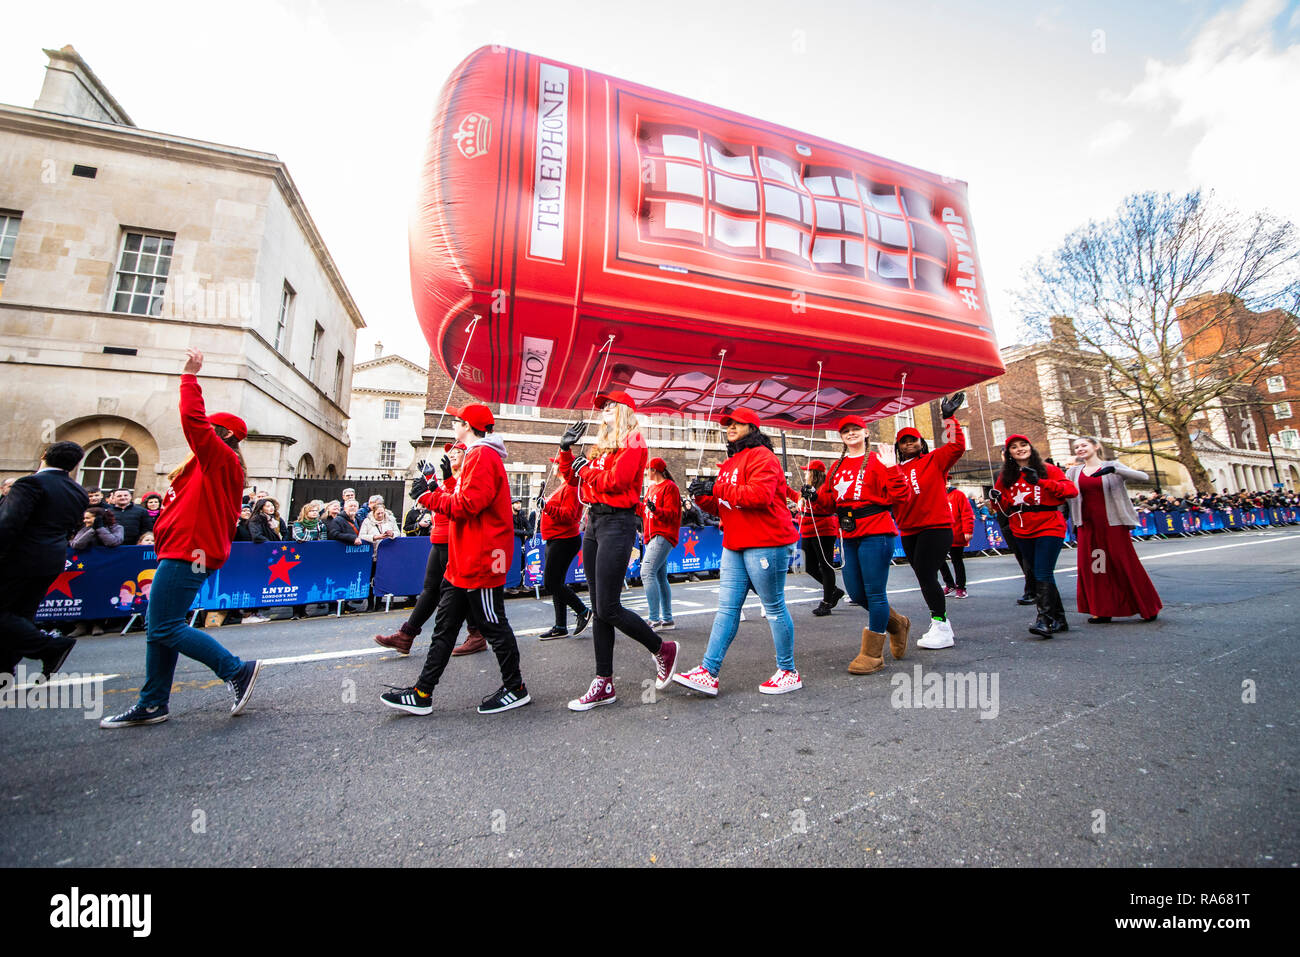 Giant Red Phone Box Balloon at London's New Year's Day